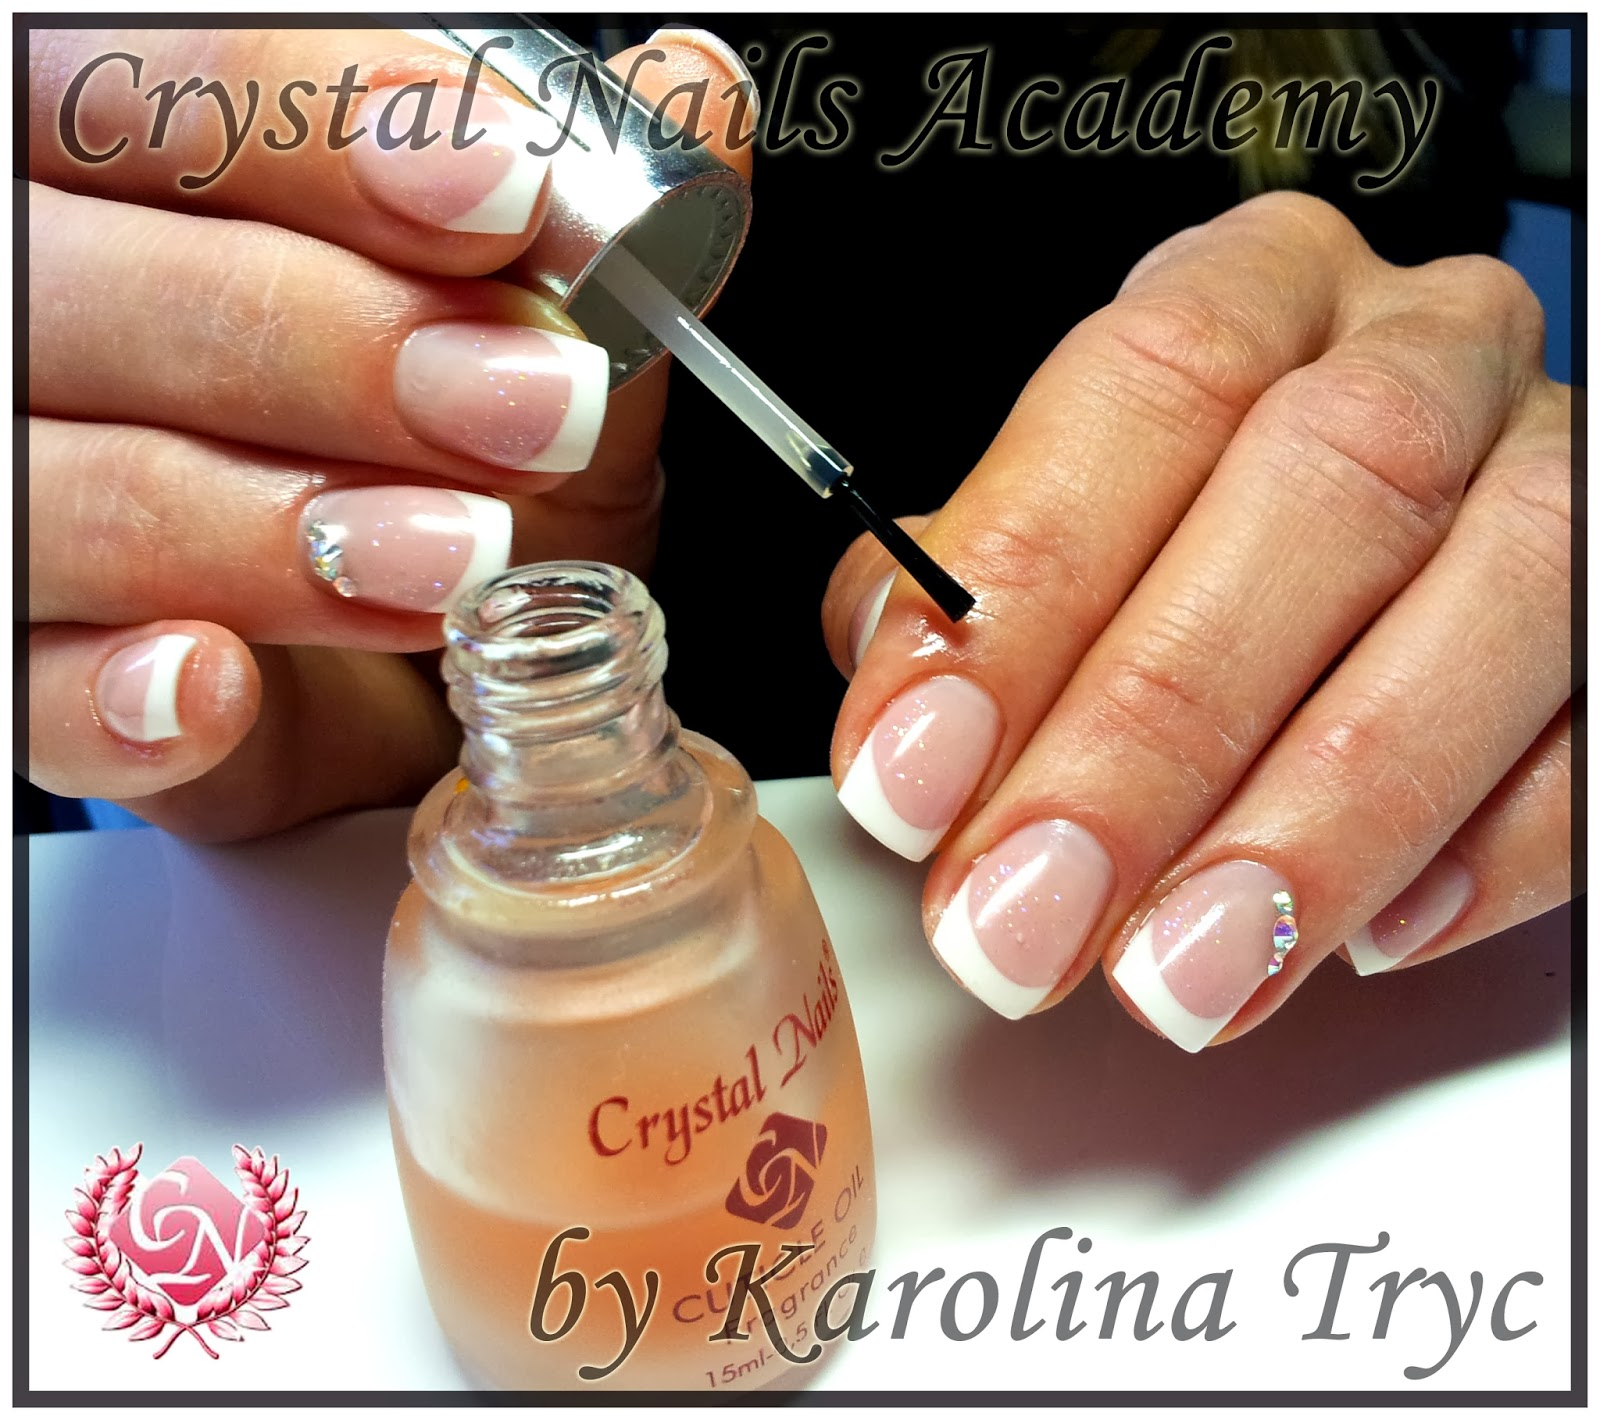 CRYSTAL NAILS UK***NAIL COURSES***UV GEL***ACRYLIC***OVERLAY***NAIL ...